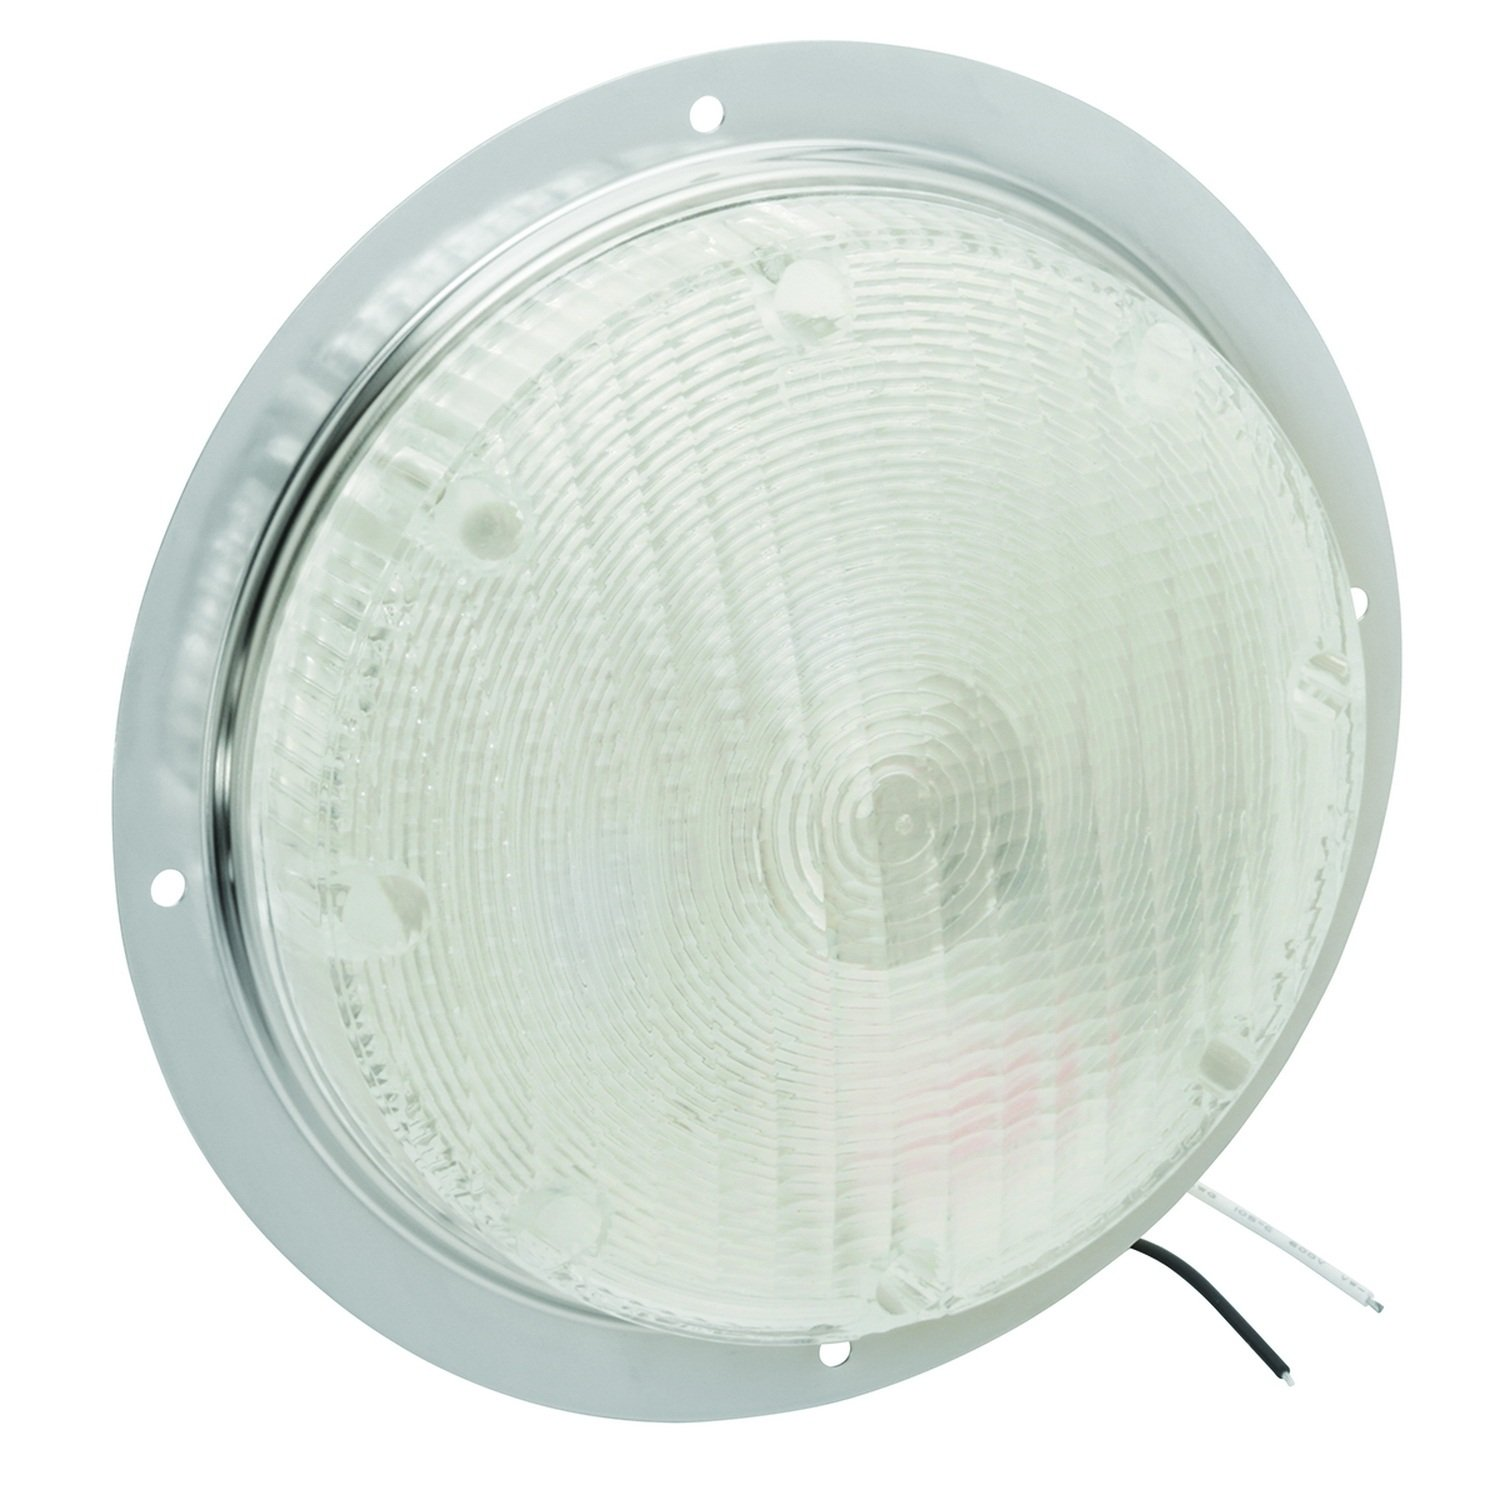 Bargman 40-60-001 7 Inch Security / Utility Light - 12 Volt